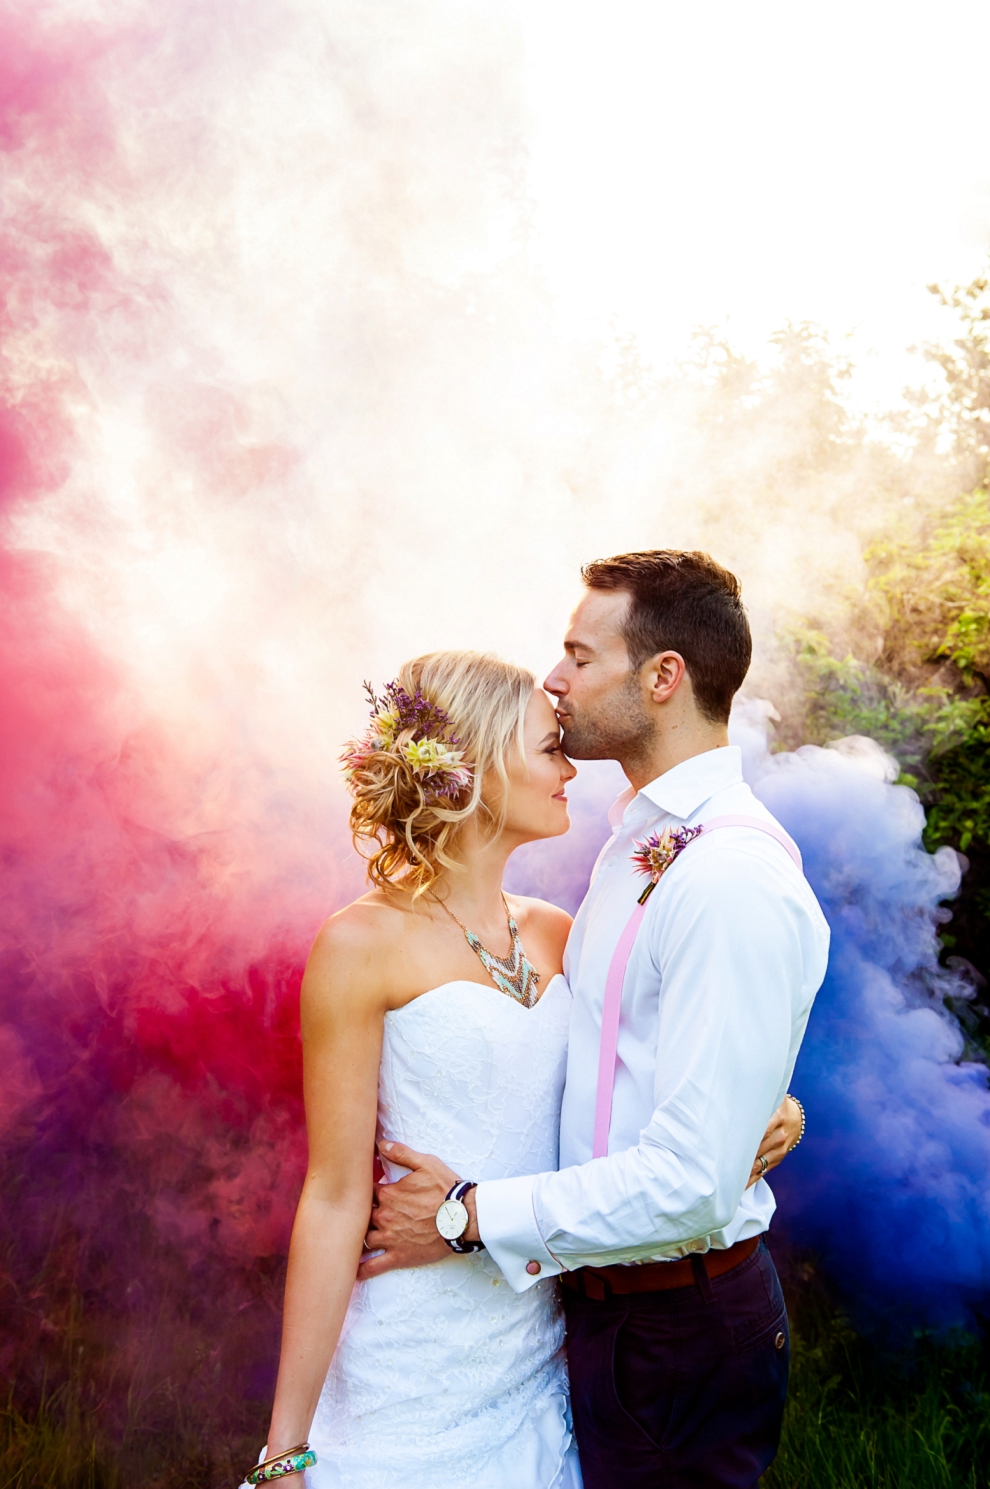 Best wedding photographers London Smoke bombs